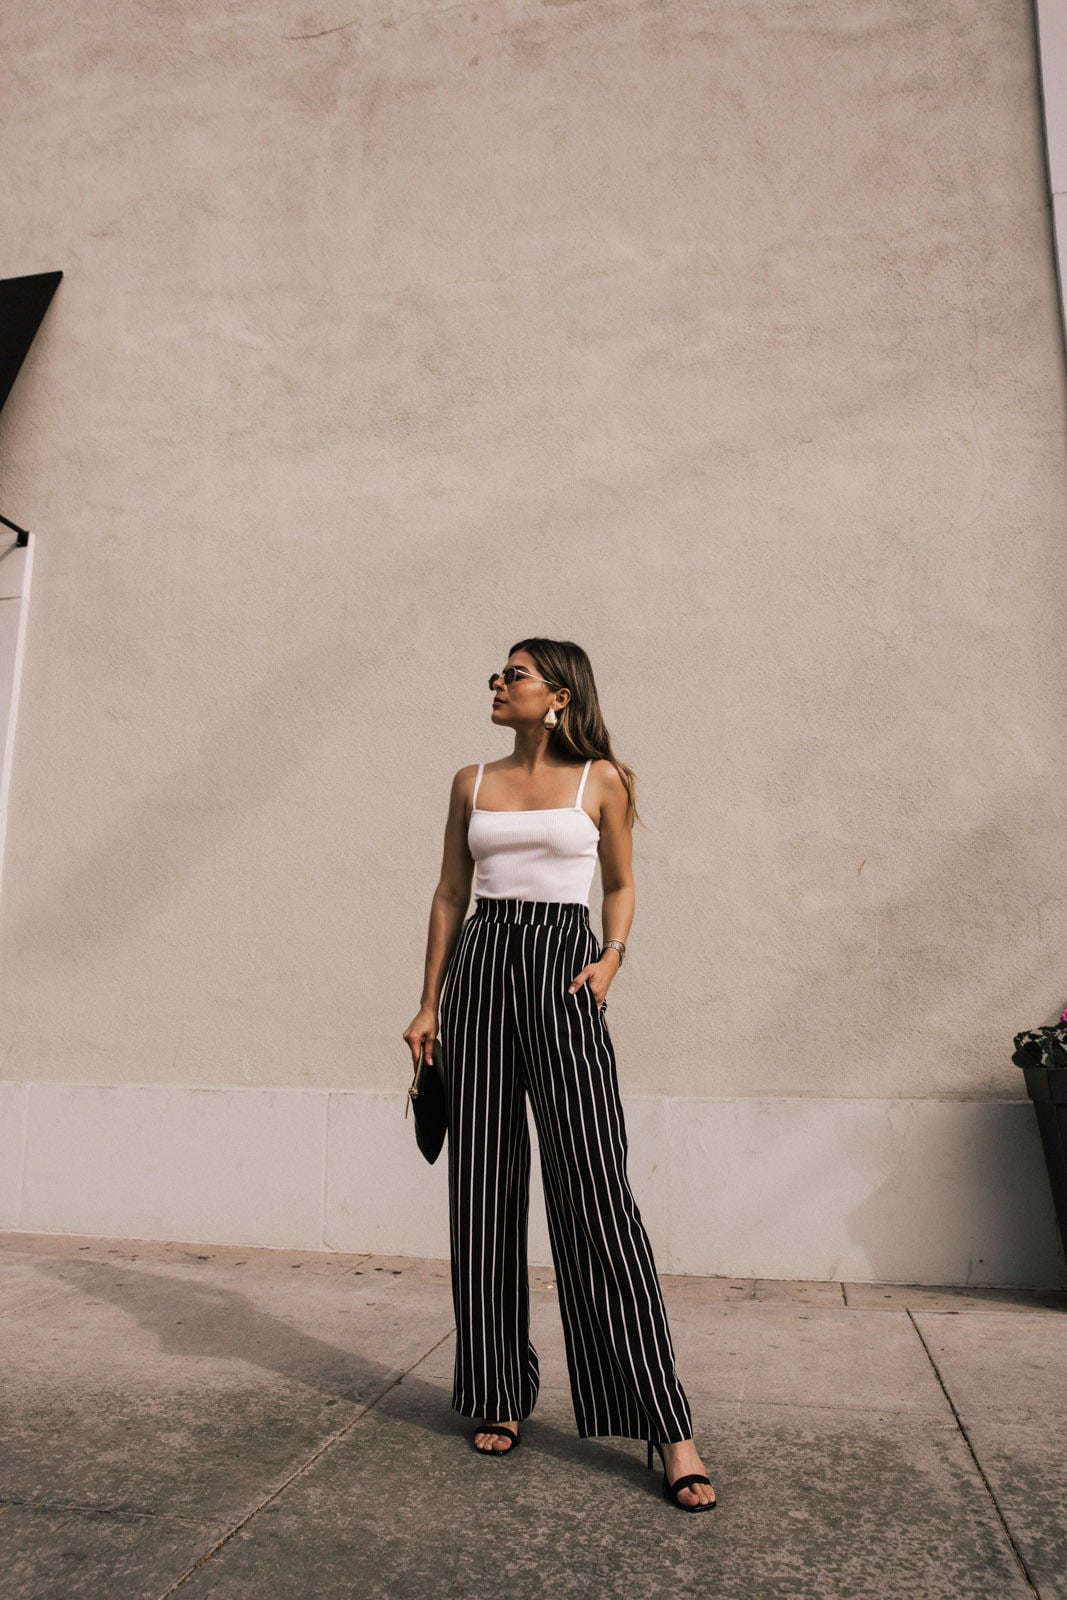 4 Kinds of Pants All Petite Girls Need by Pam Hetlinger | TheGirlFromPanama.com | River Island outfit, wide leg pants, summer outfit, white bodysuit, river island stripe pants, river island bodysuit